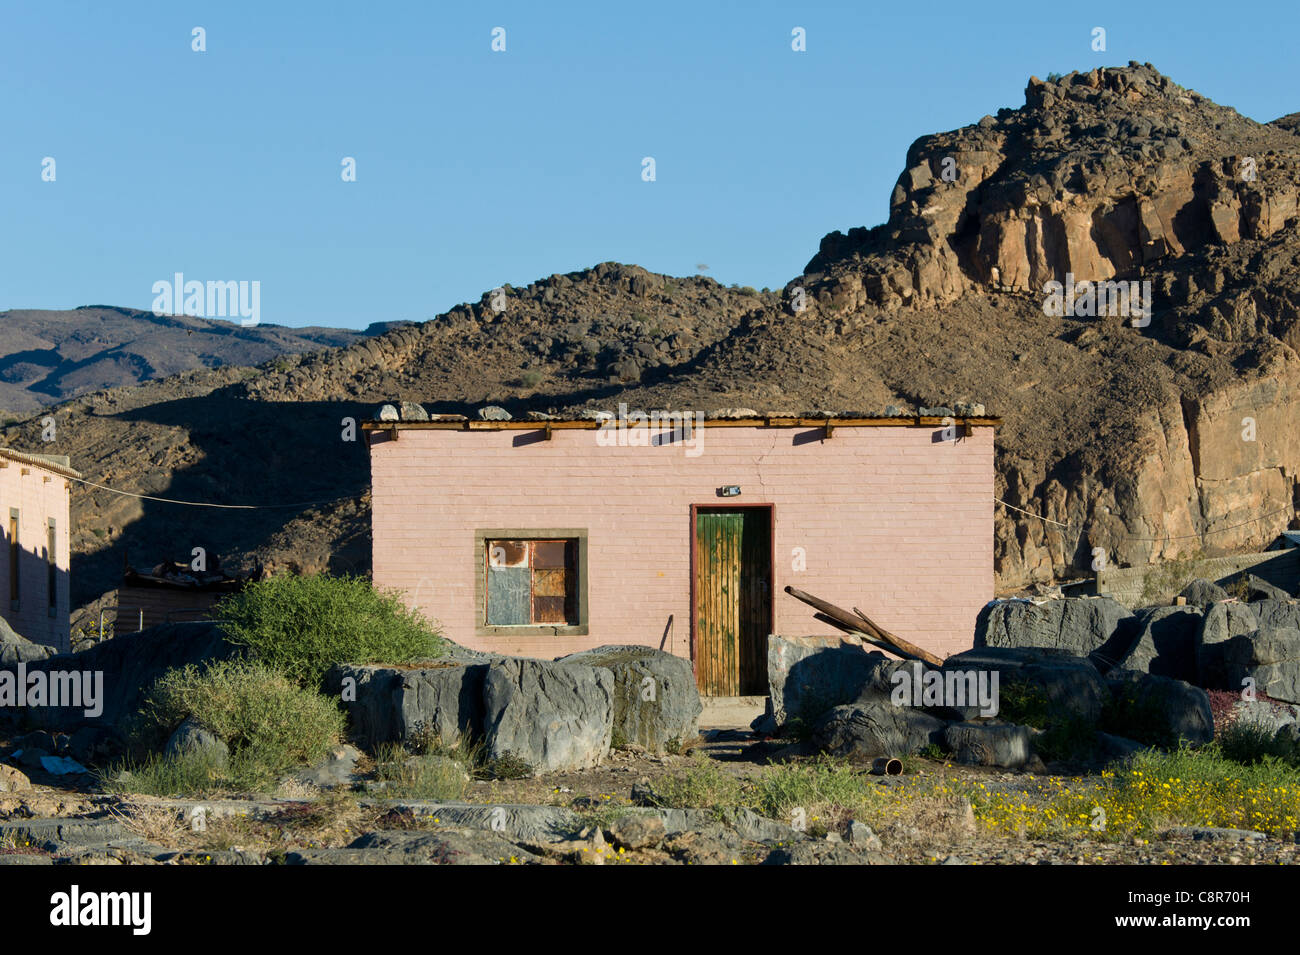 Farm workers house in Noordoewer Namibia - Stock Image